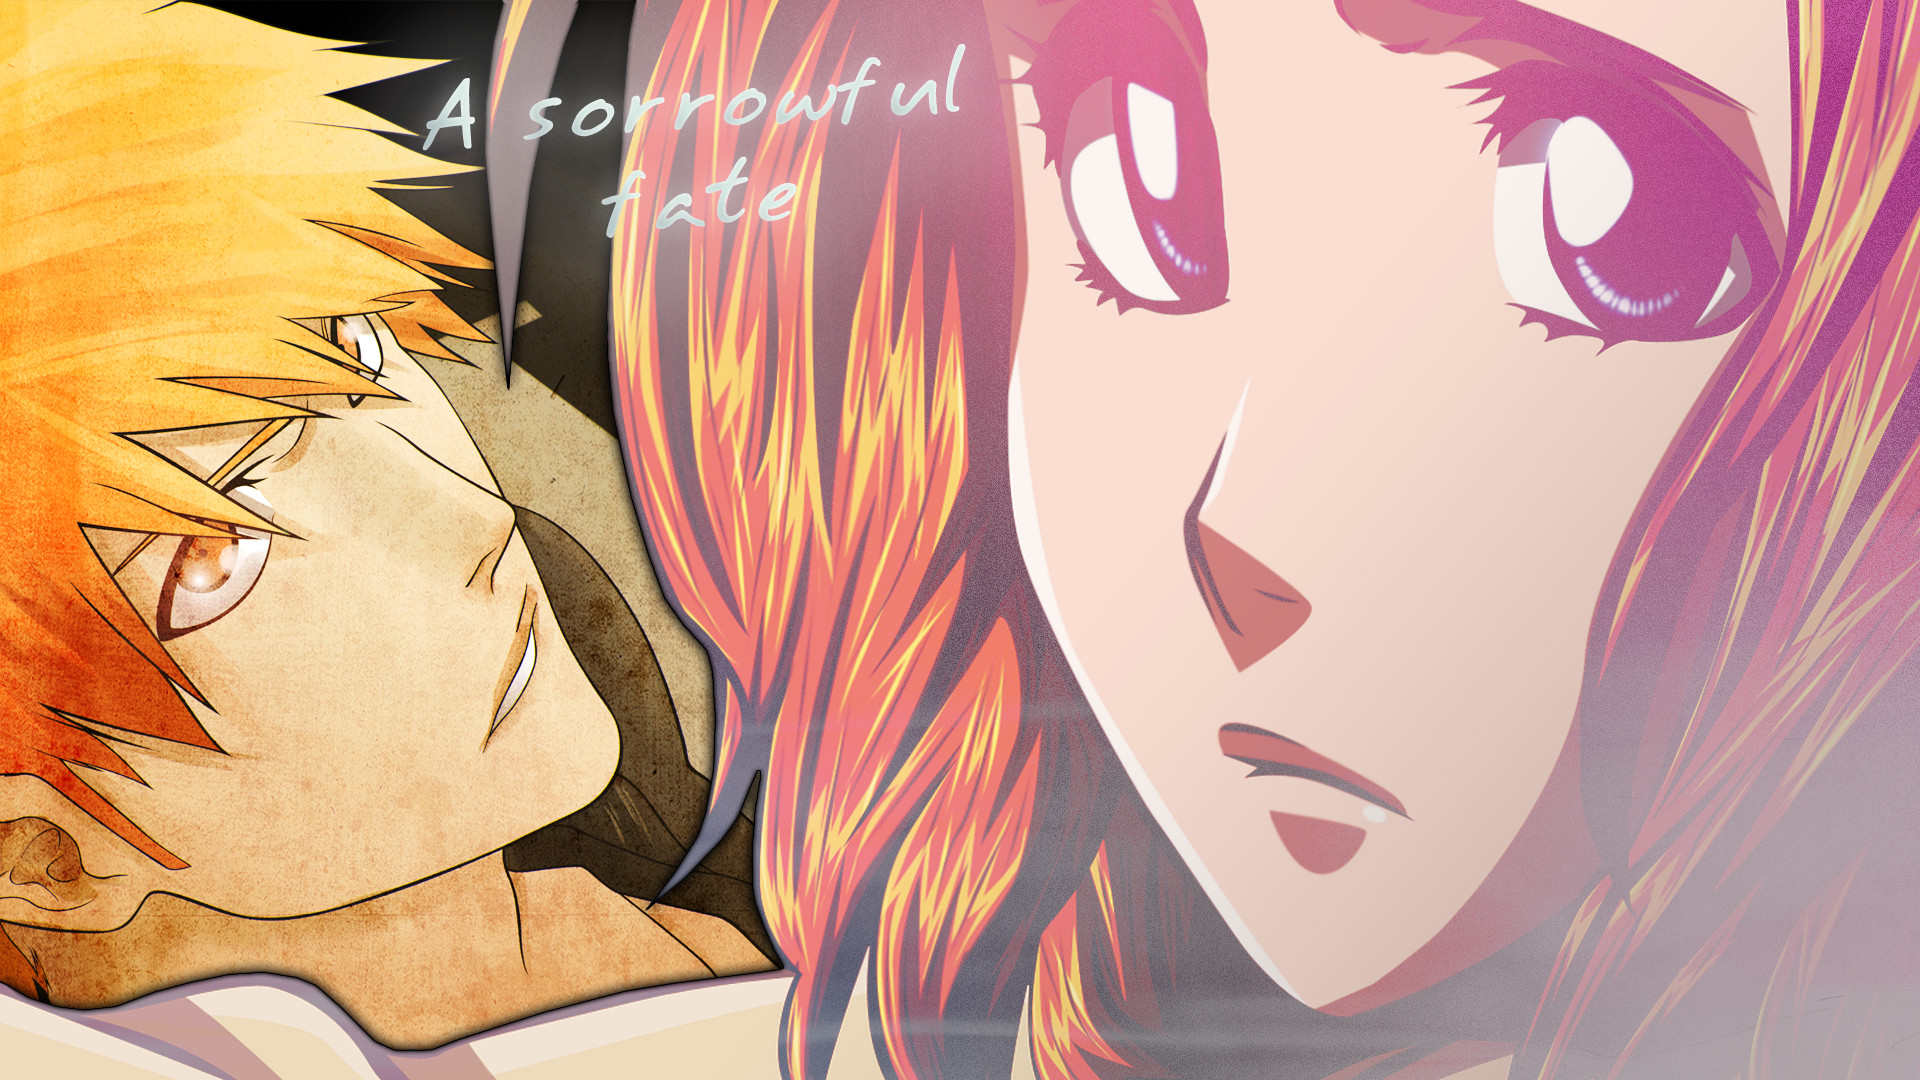 Res: 1920x1080, Ichigo and Orihime wallpaper by SchneeTsurara Ichigo and Orihime wallpaper  by SchneeTsurara